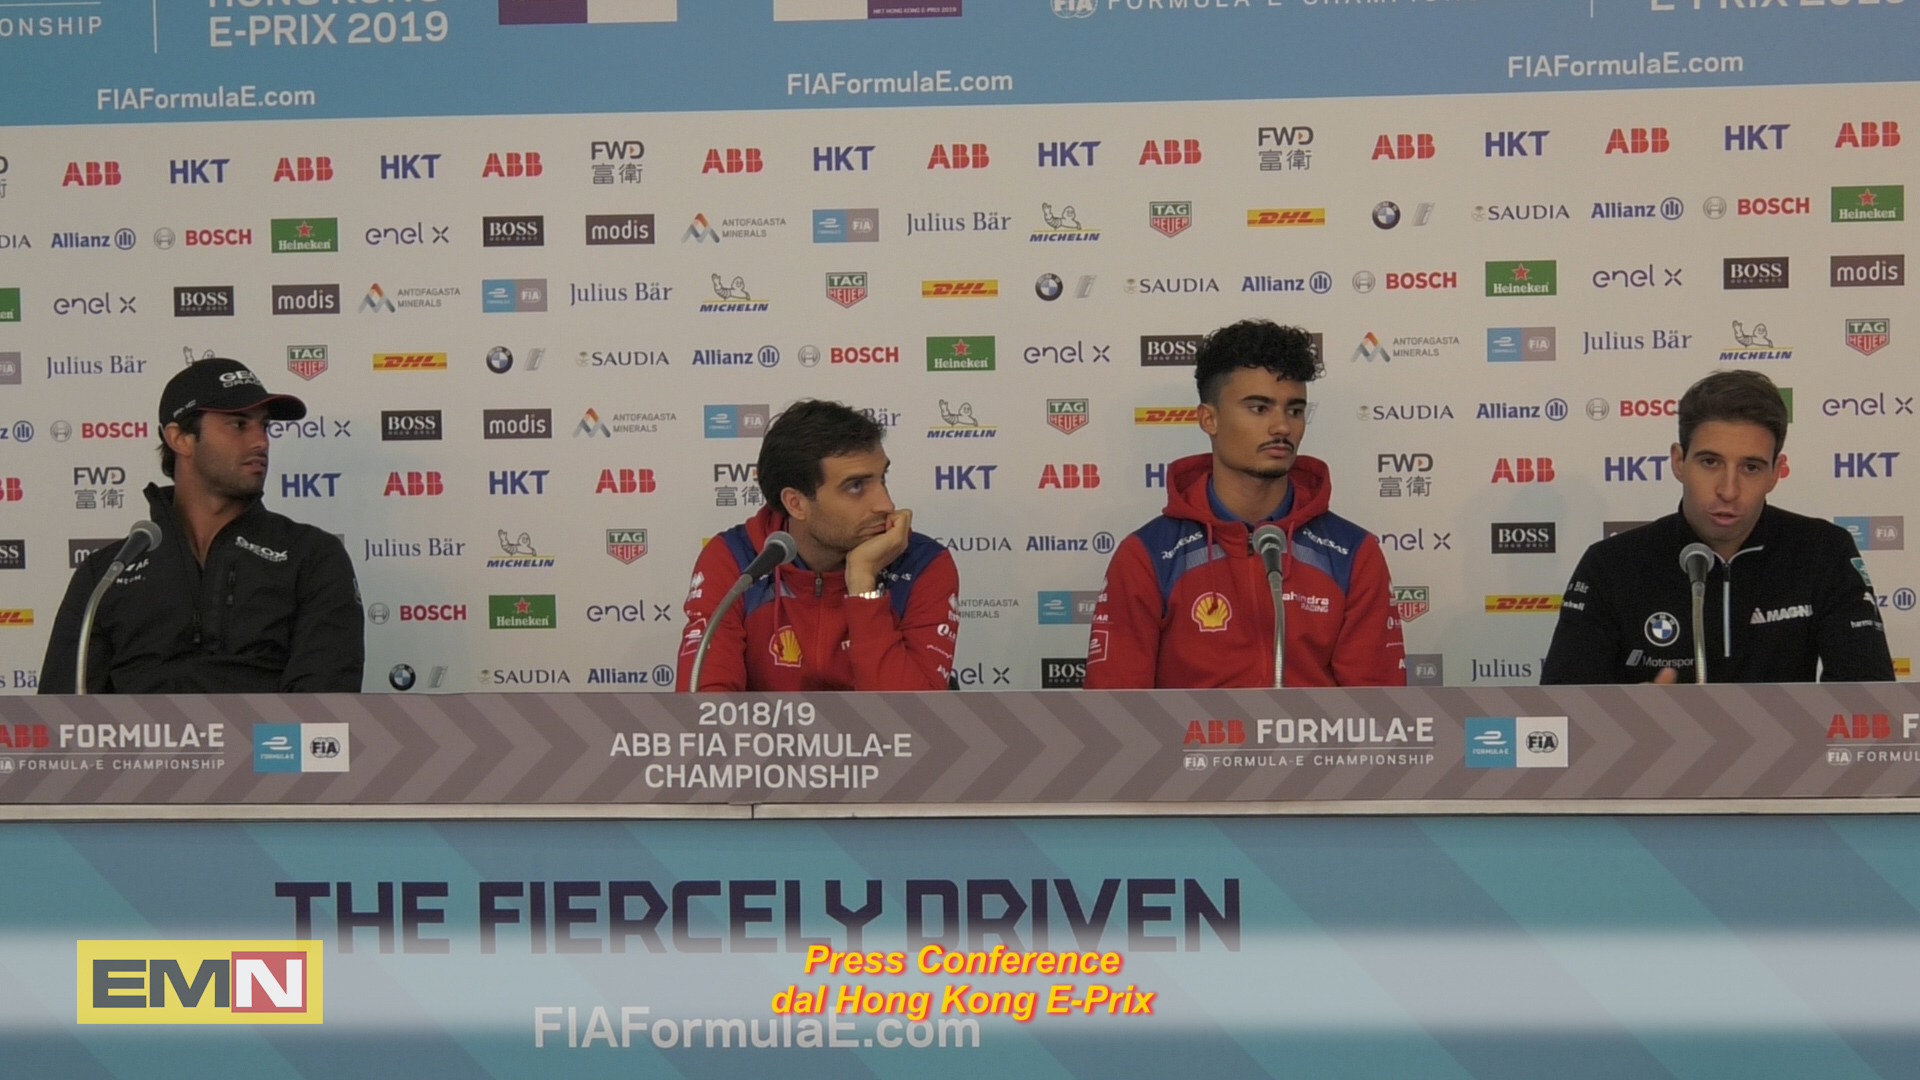 9 Press Conference Drivers